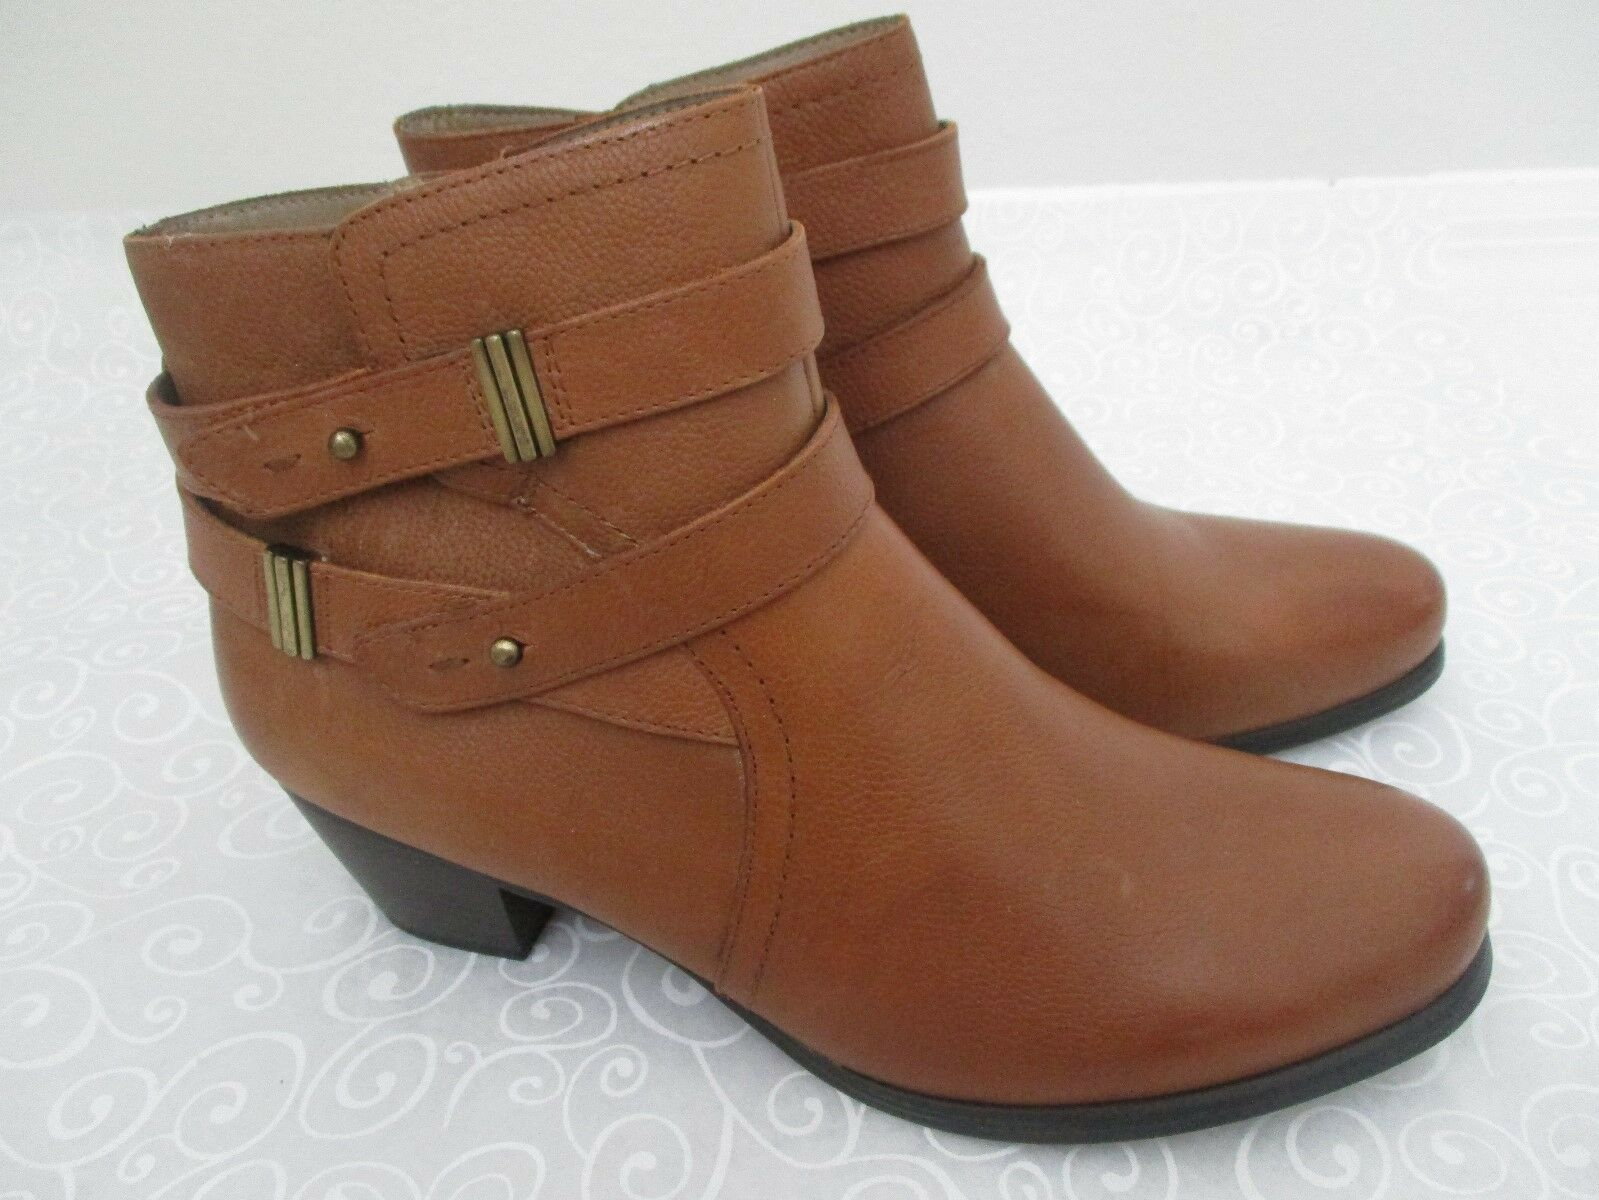 99 NATURALIZER KARMIC marron LEATHER ANKLE bottes Taille 11 W - NEW